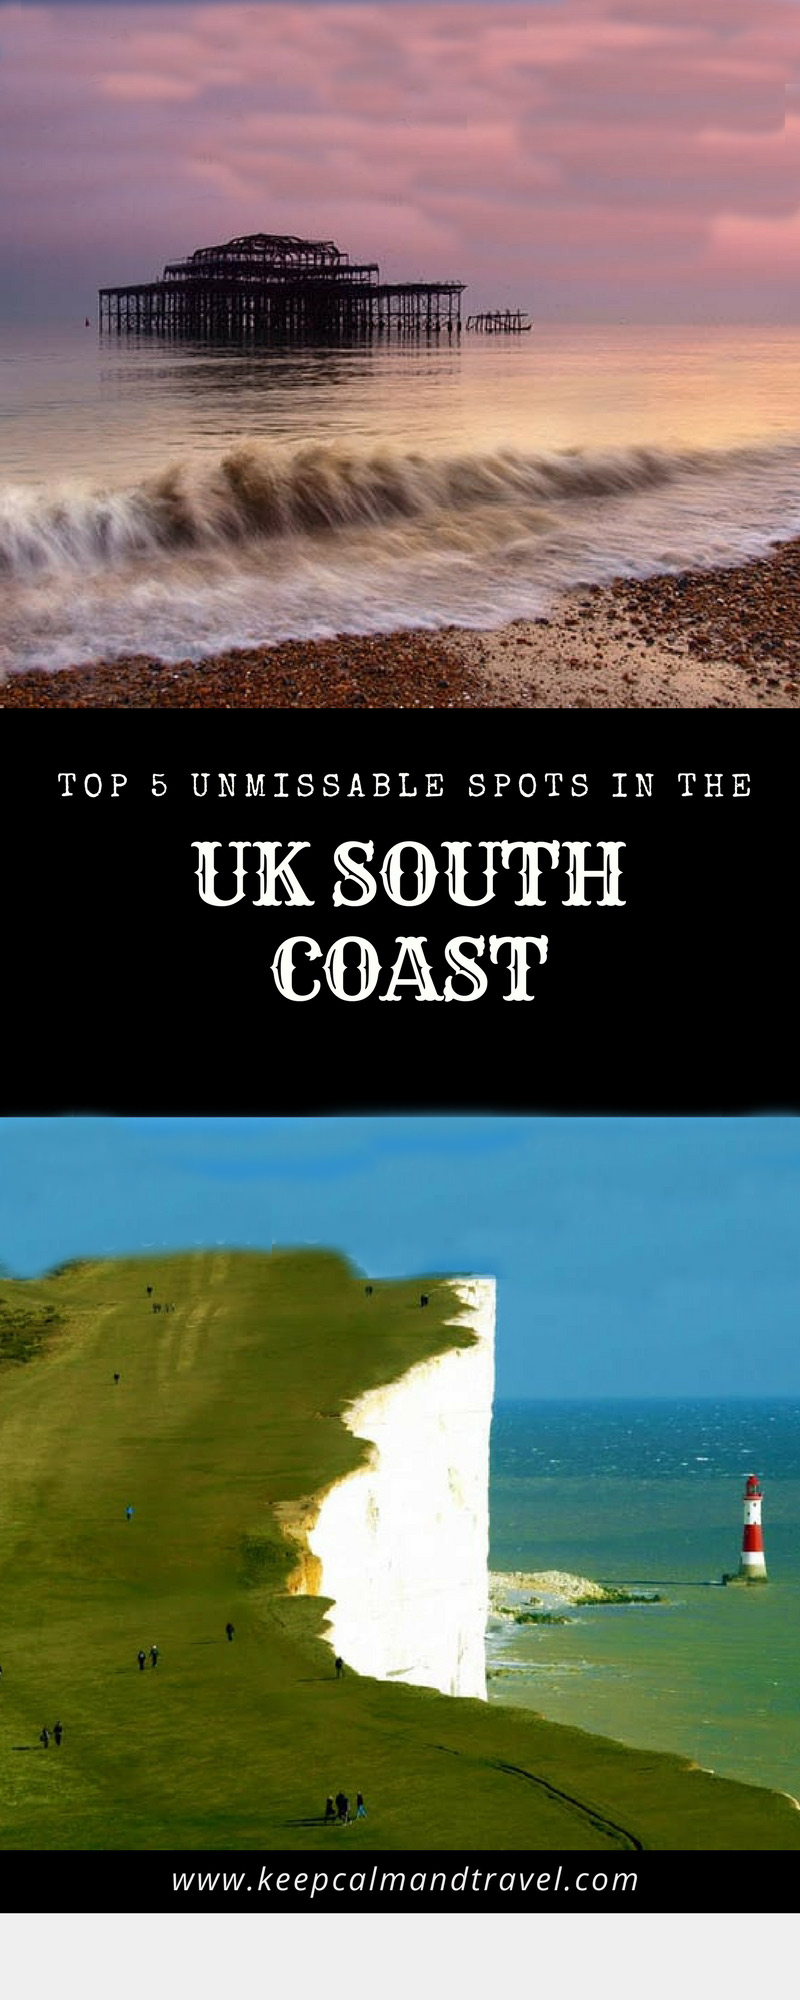 Don't Miss the top 5 spots in South England, lovely landscapes and great activities to try out! #England #Brighton #Eastbourne #SouthEngland #UK #Travel